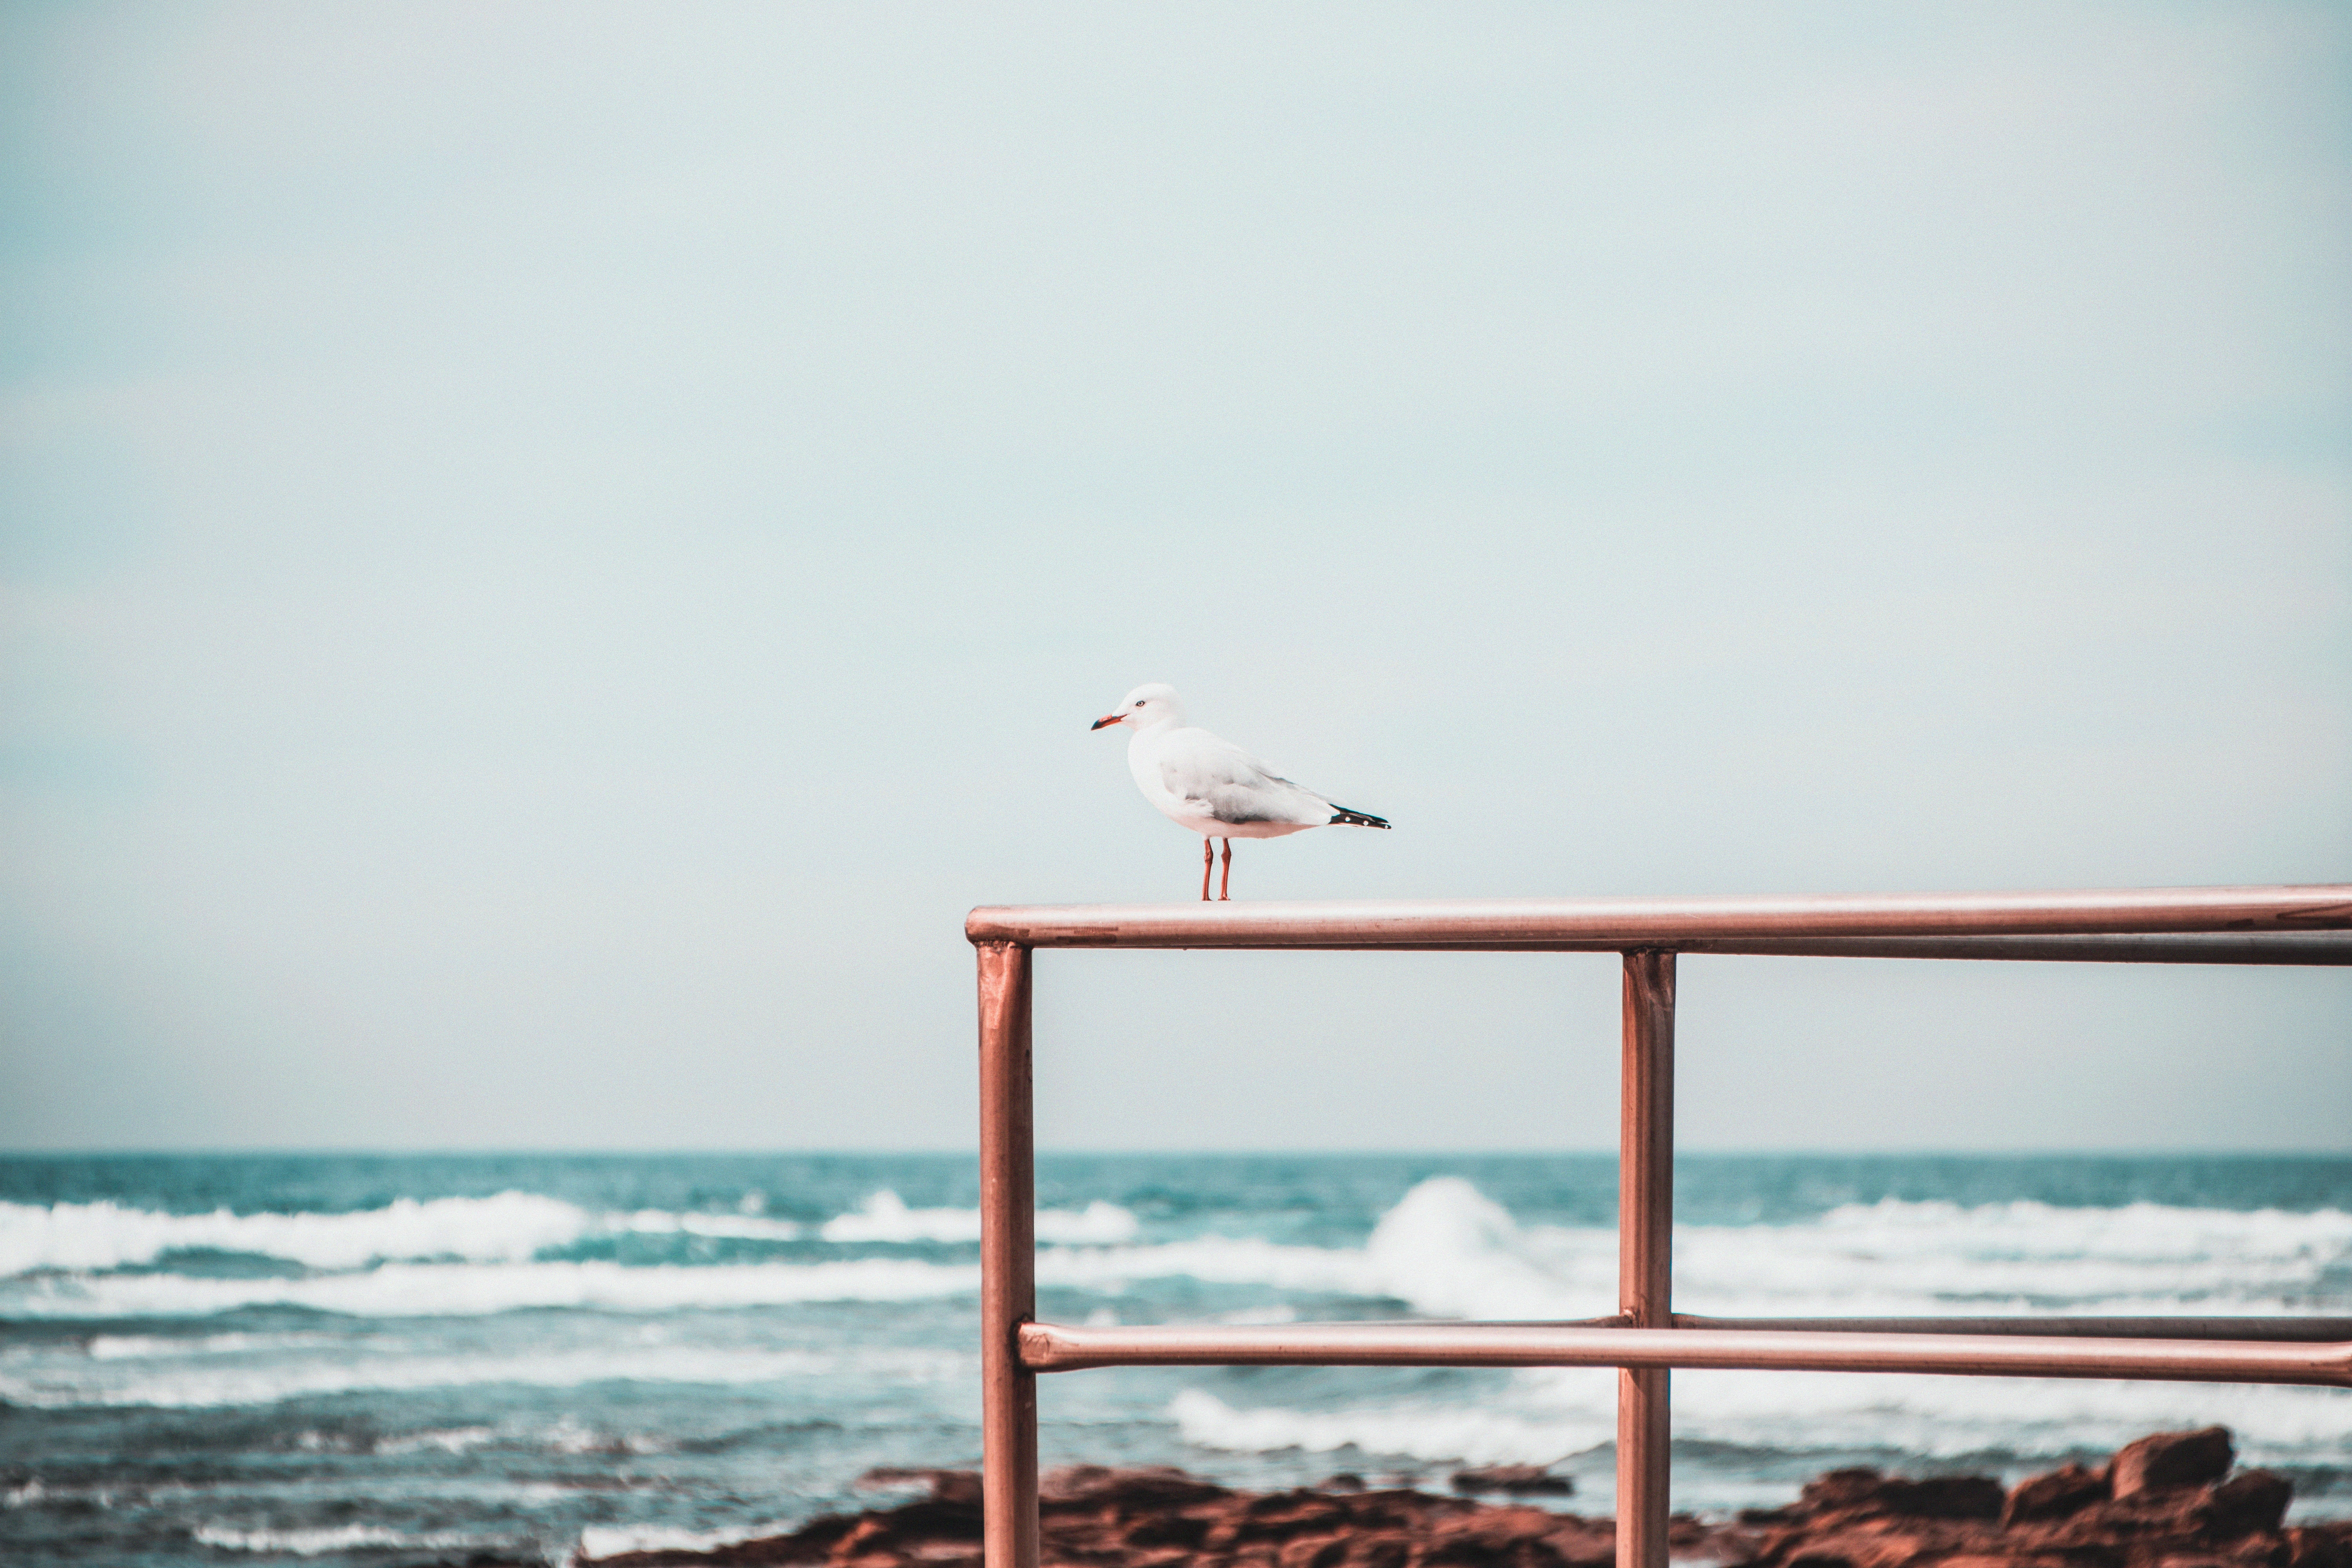 white seagull perch on red railing